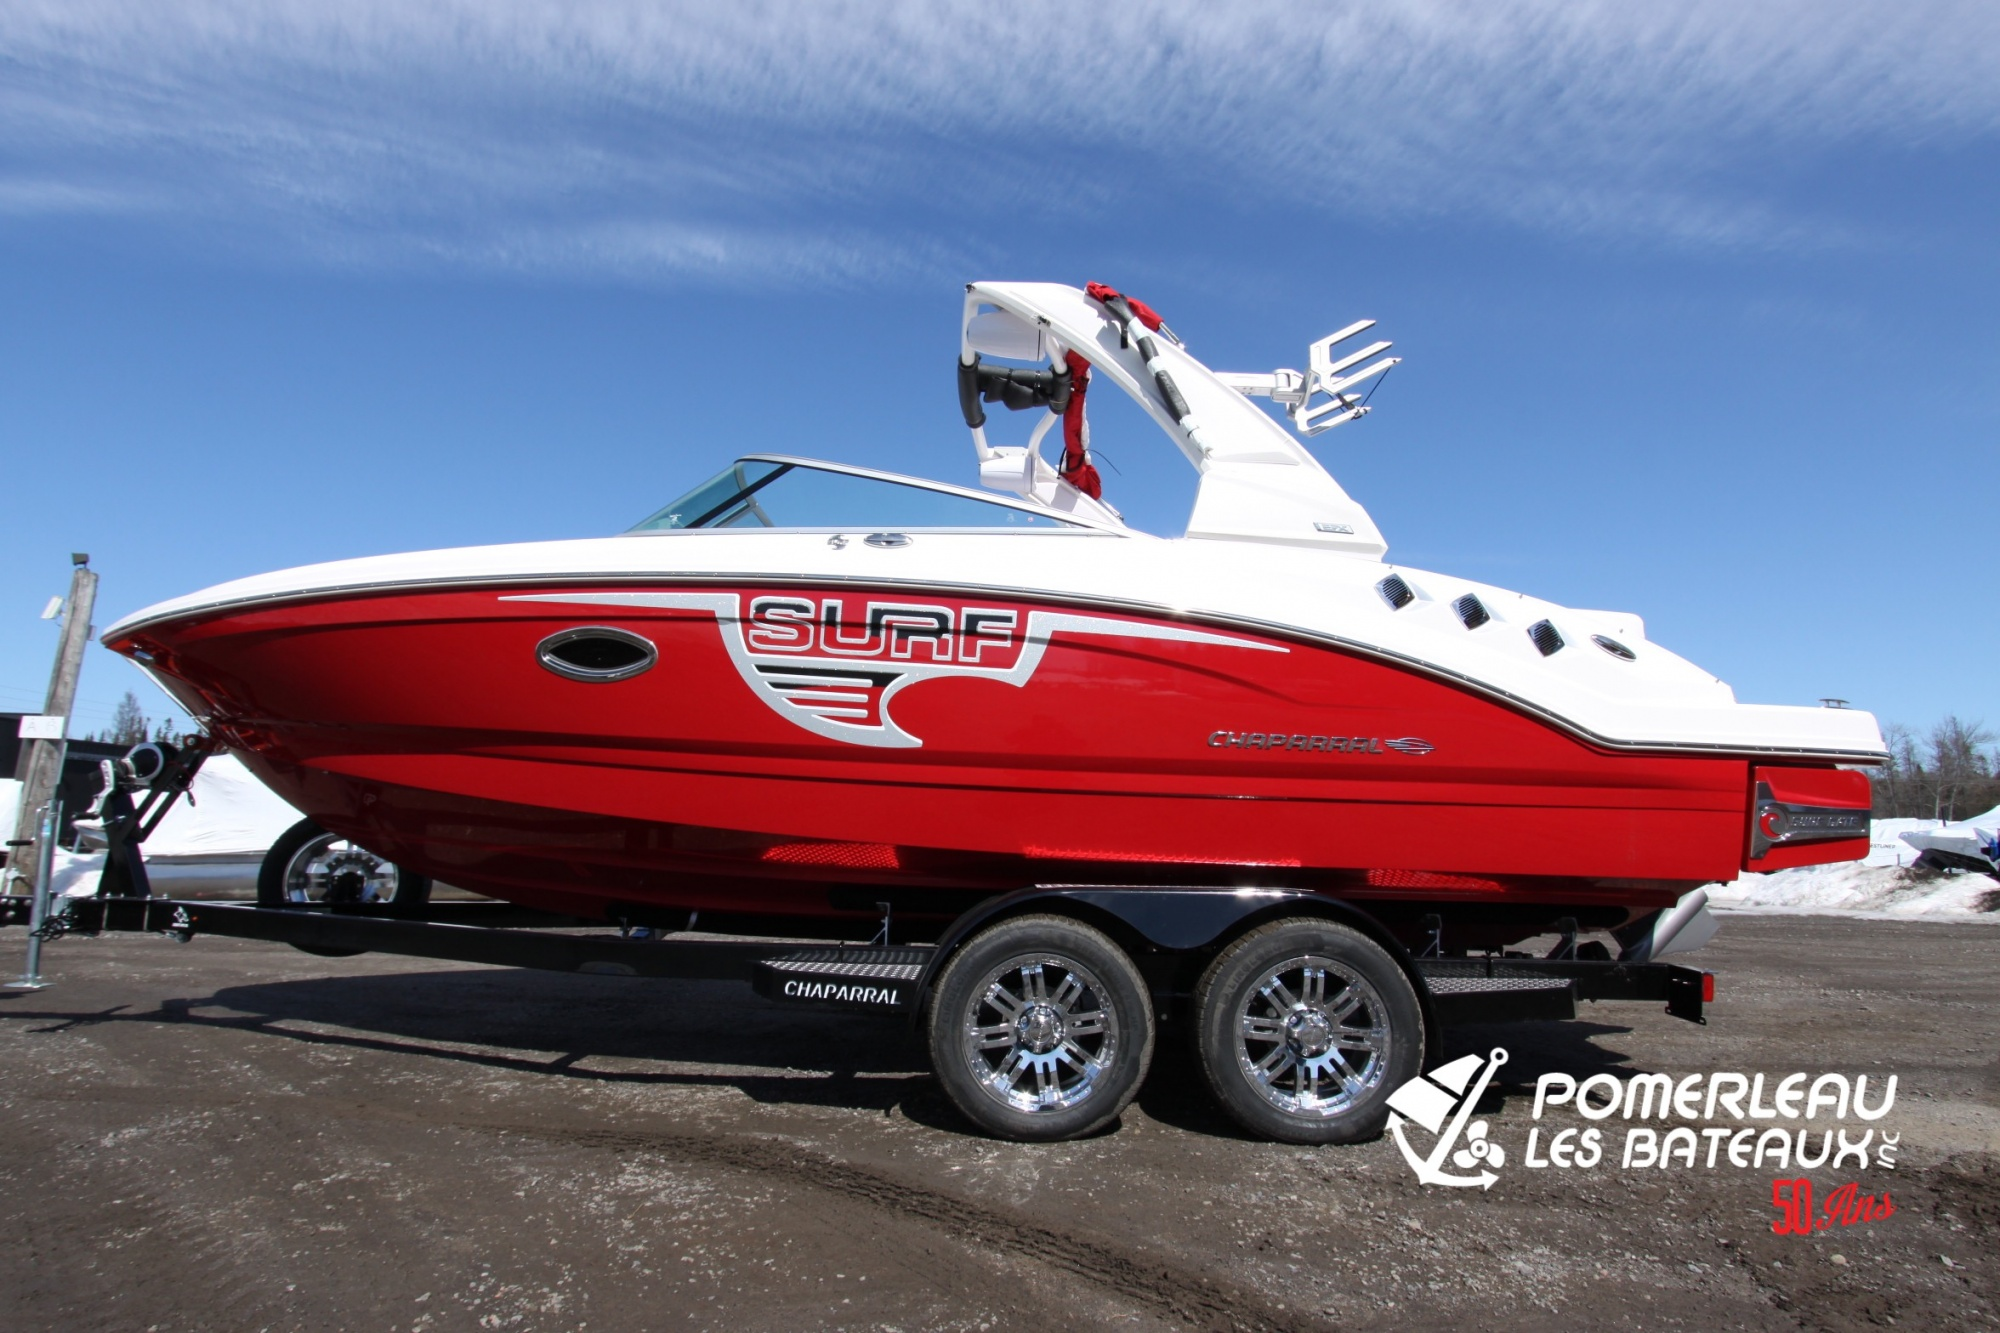 Chaparral 24 Surf - IMG_5010